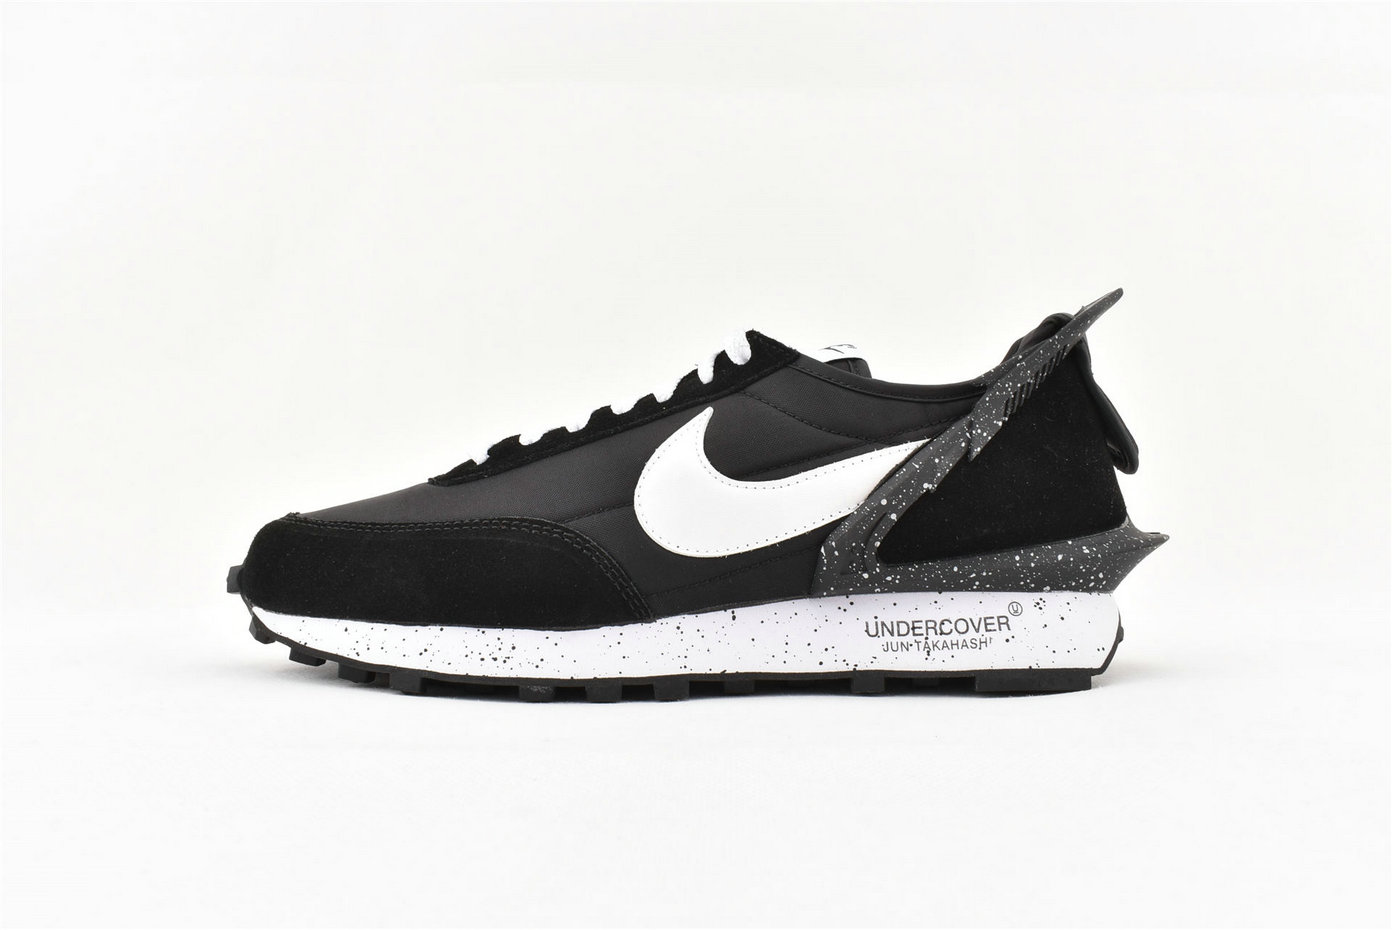 Where To Buy Womens Sacai x Nike LDV Waffle Daybreak Black White AA6853-001